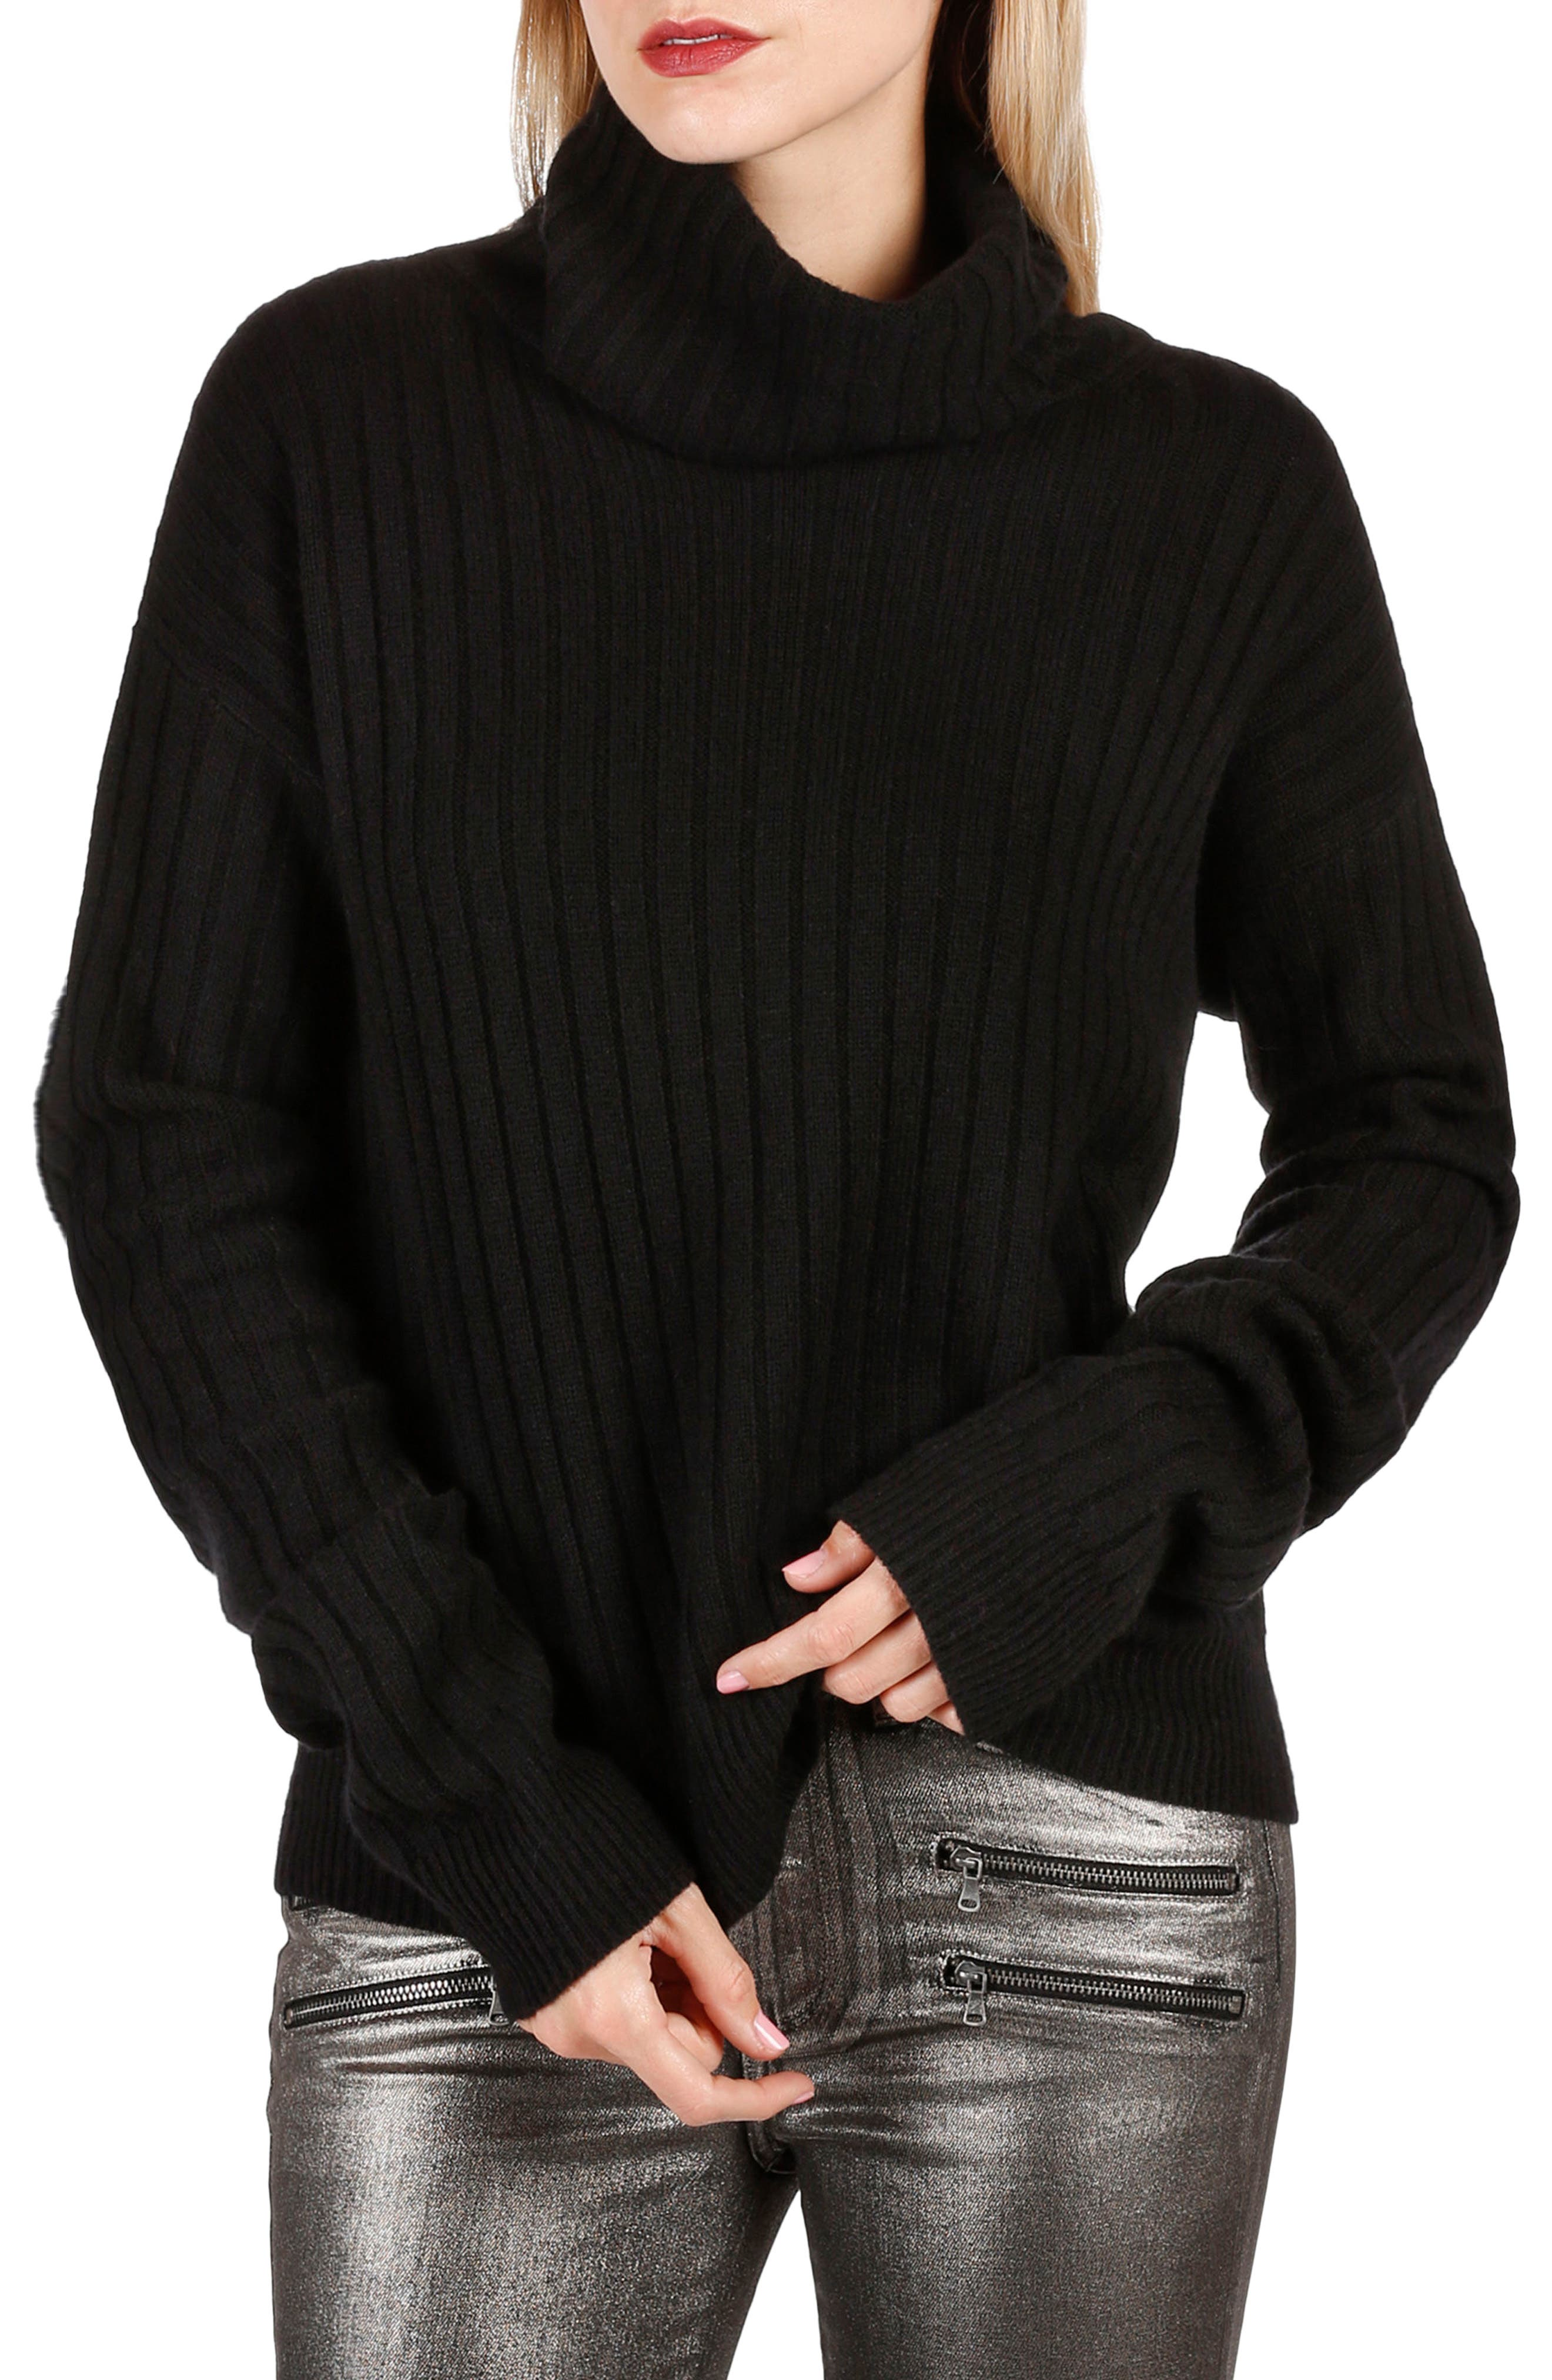 Rosie HW x PAIGE Mina Turtleneck Sweater,                             Main thumbnail 1, color,                             Black